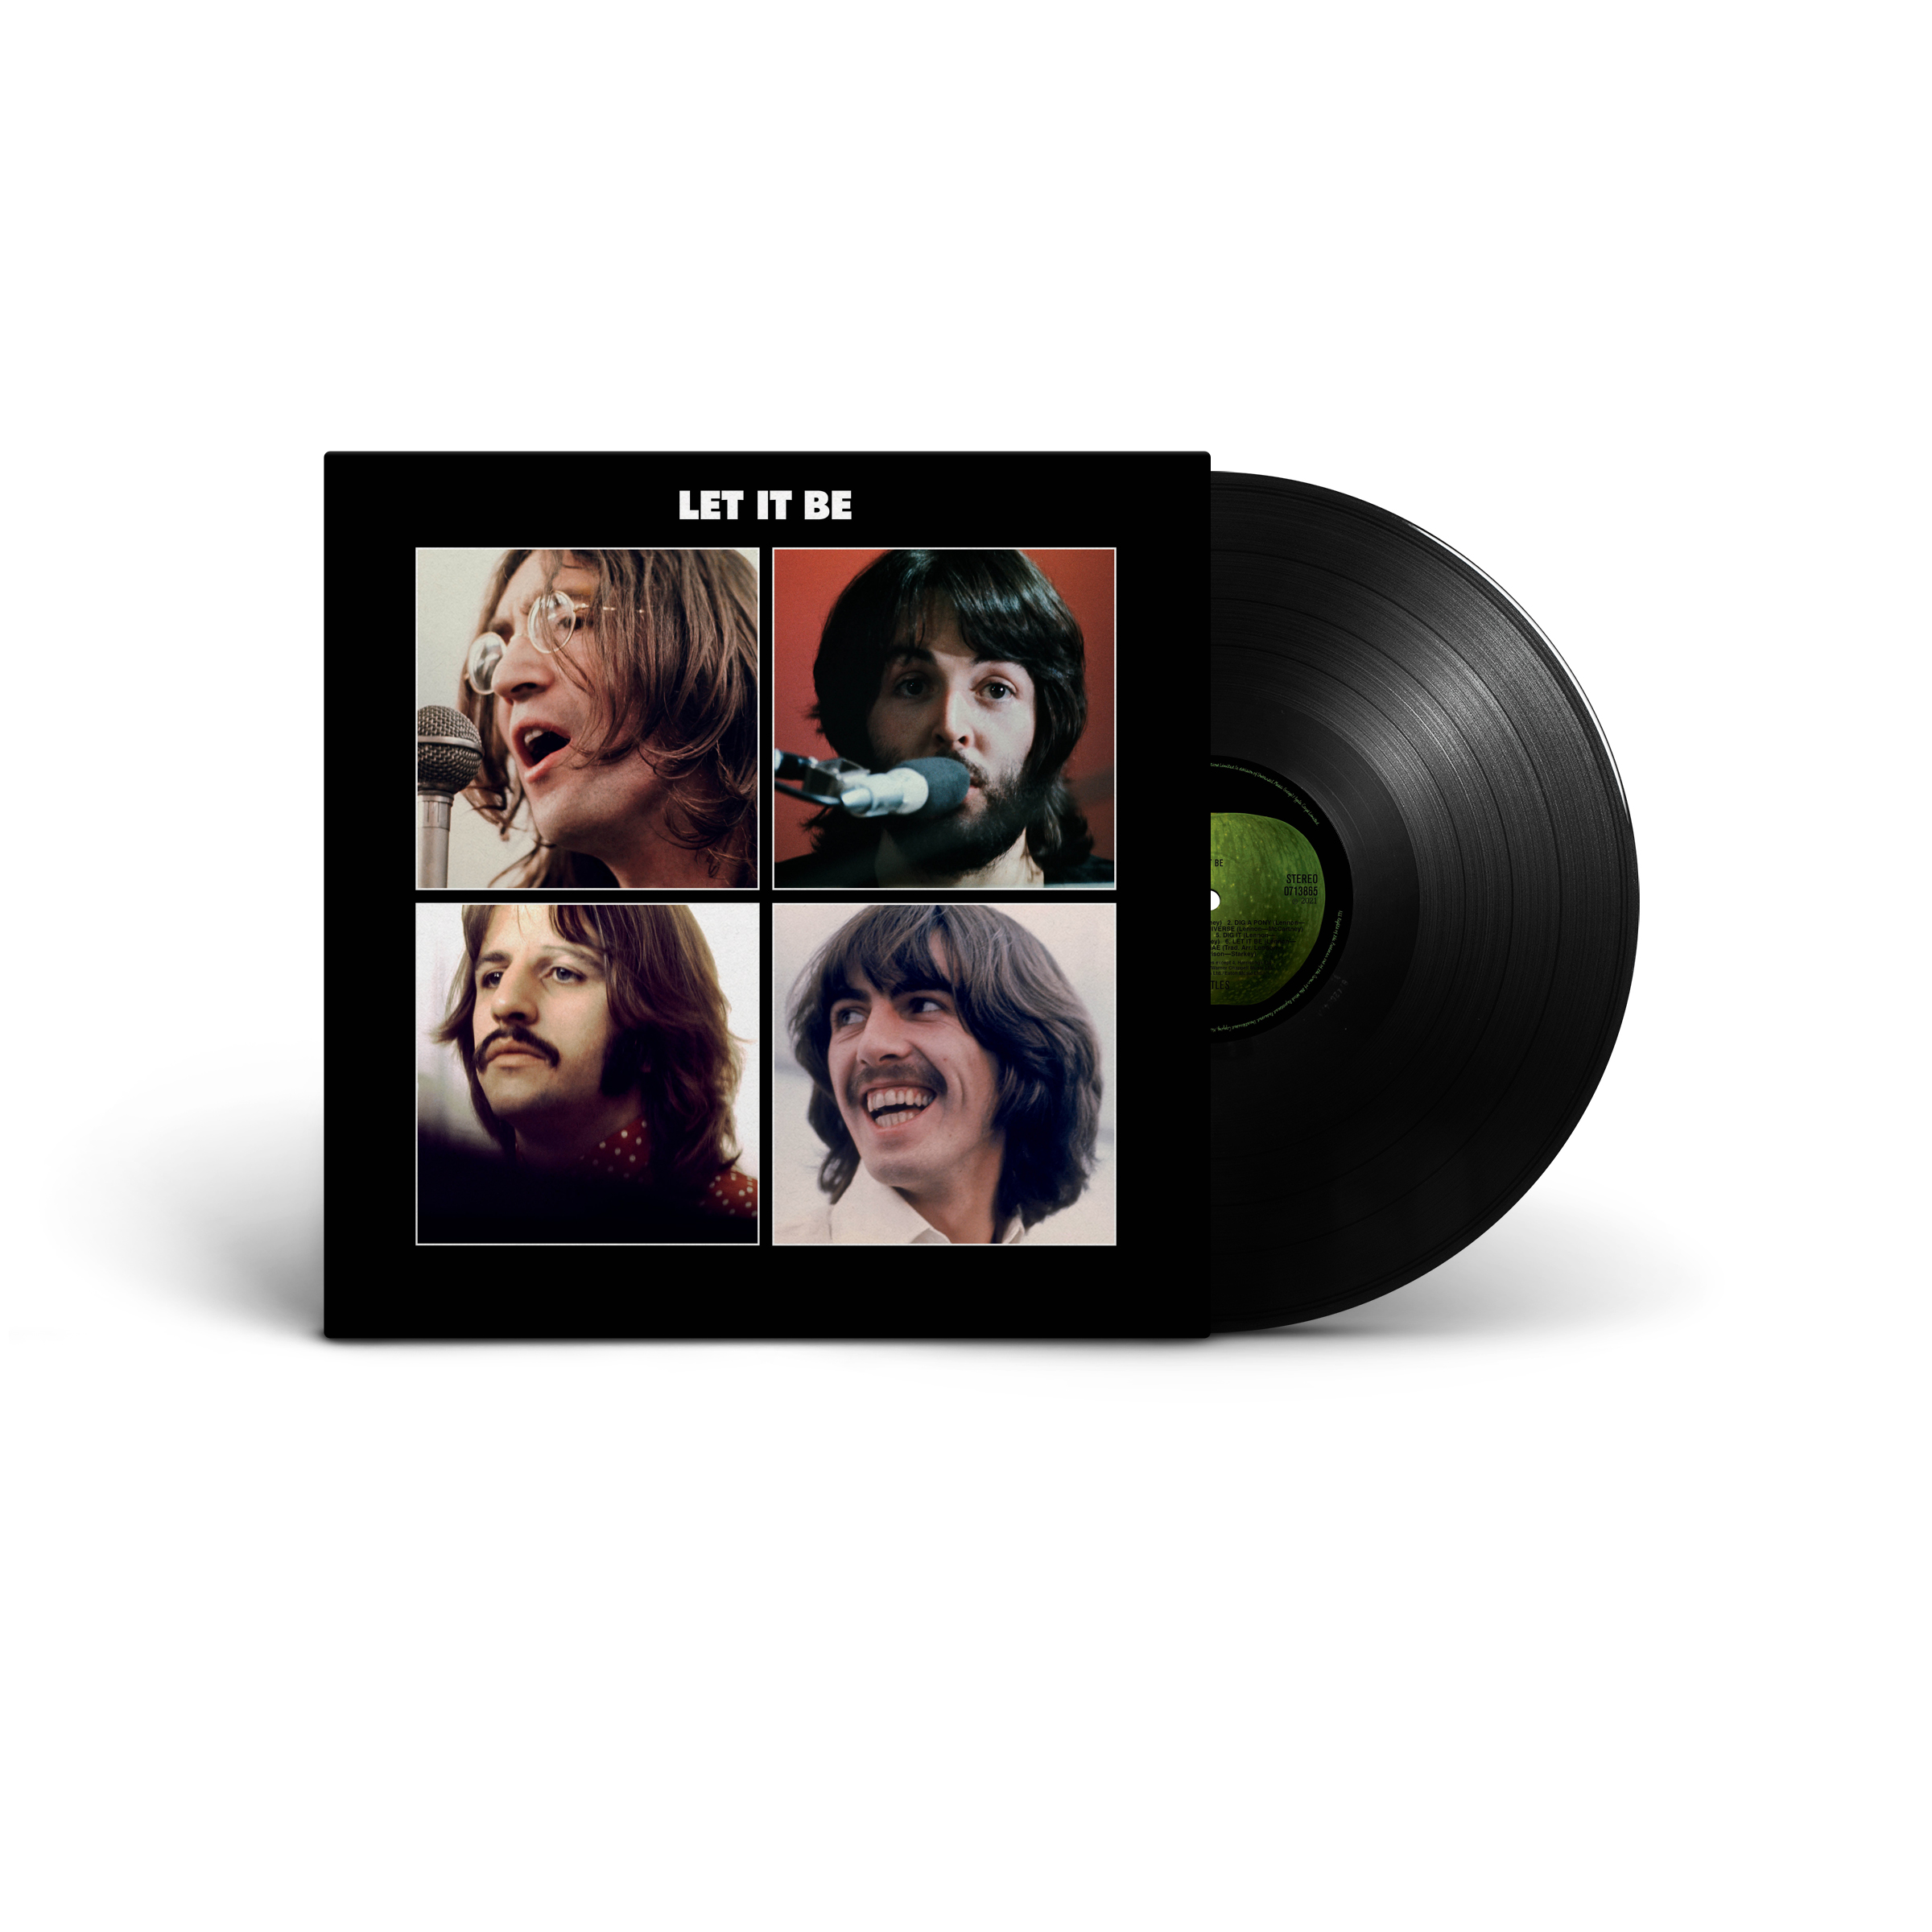 THE BEATLES - LET IT BE RE-ISSUE